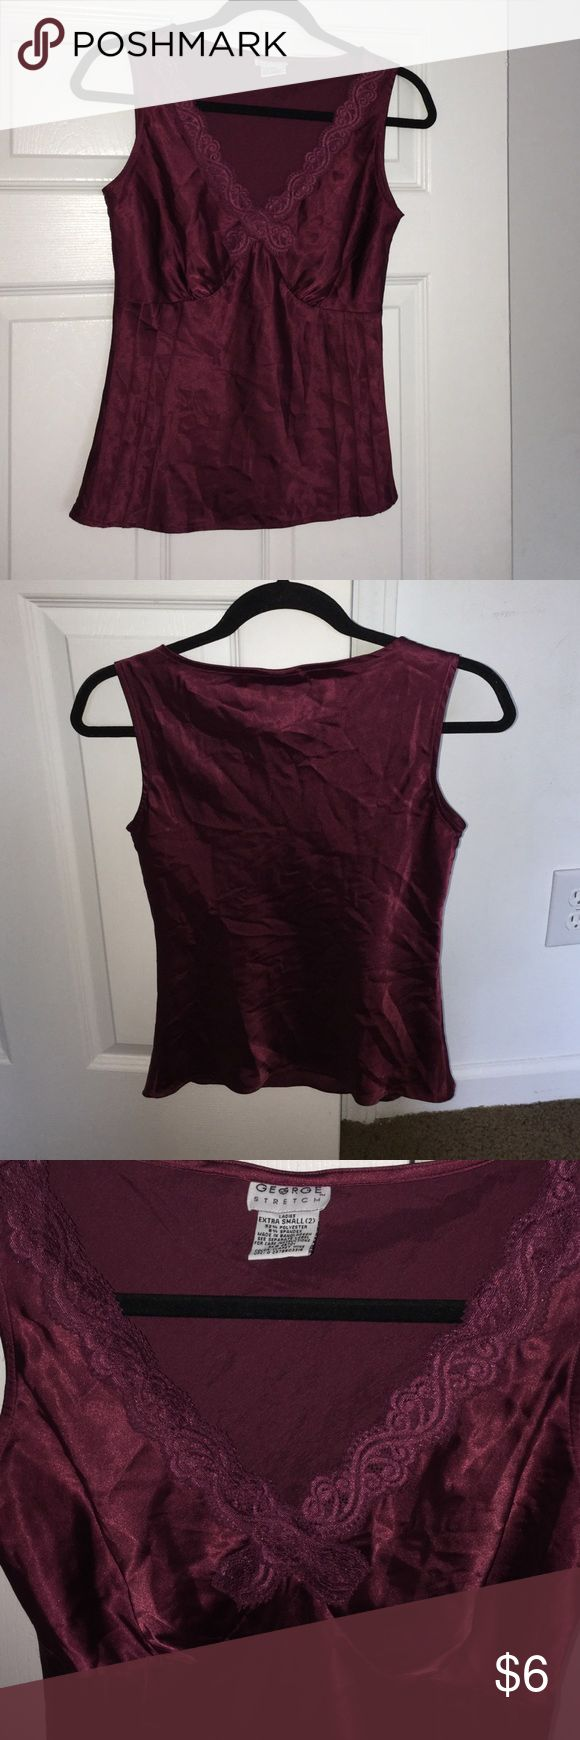 Women's Camisole Top Women's Camisole Top. In good condition from smoke free home with no holes or stains. George Tops Camisoles